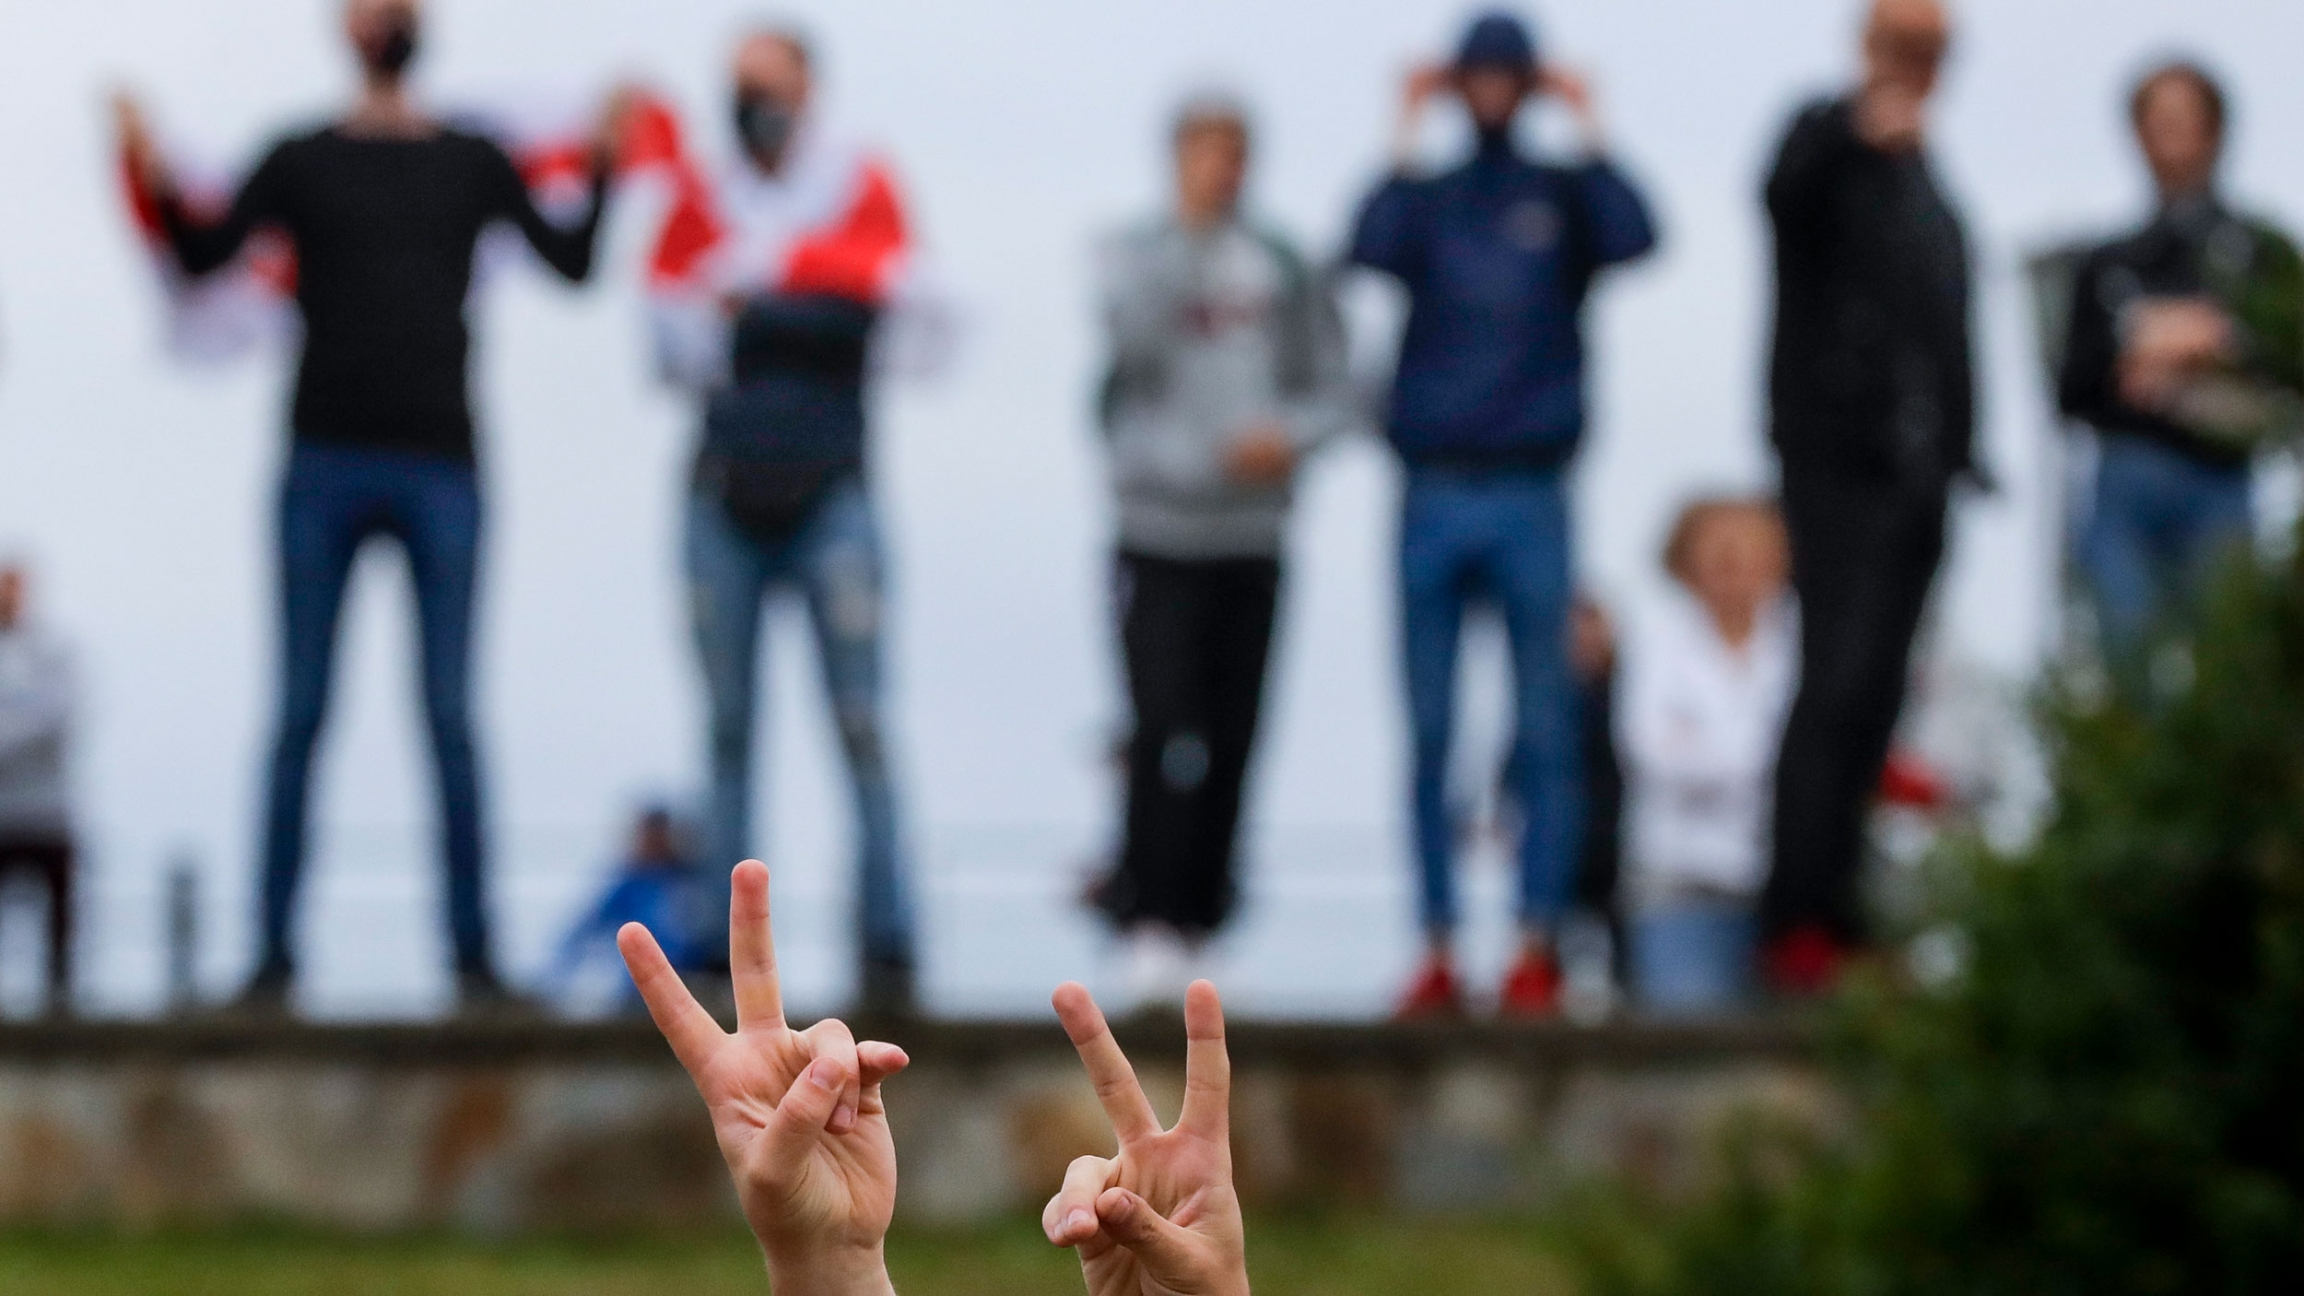 A pair of hands are shown in the nearground flashing peace signs with several people standing in a row in the background.